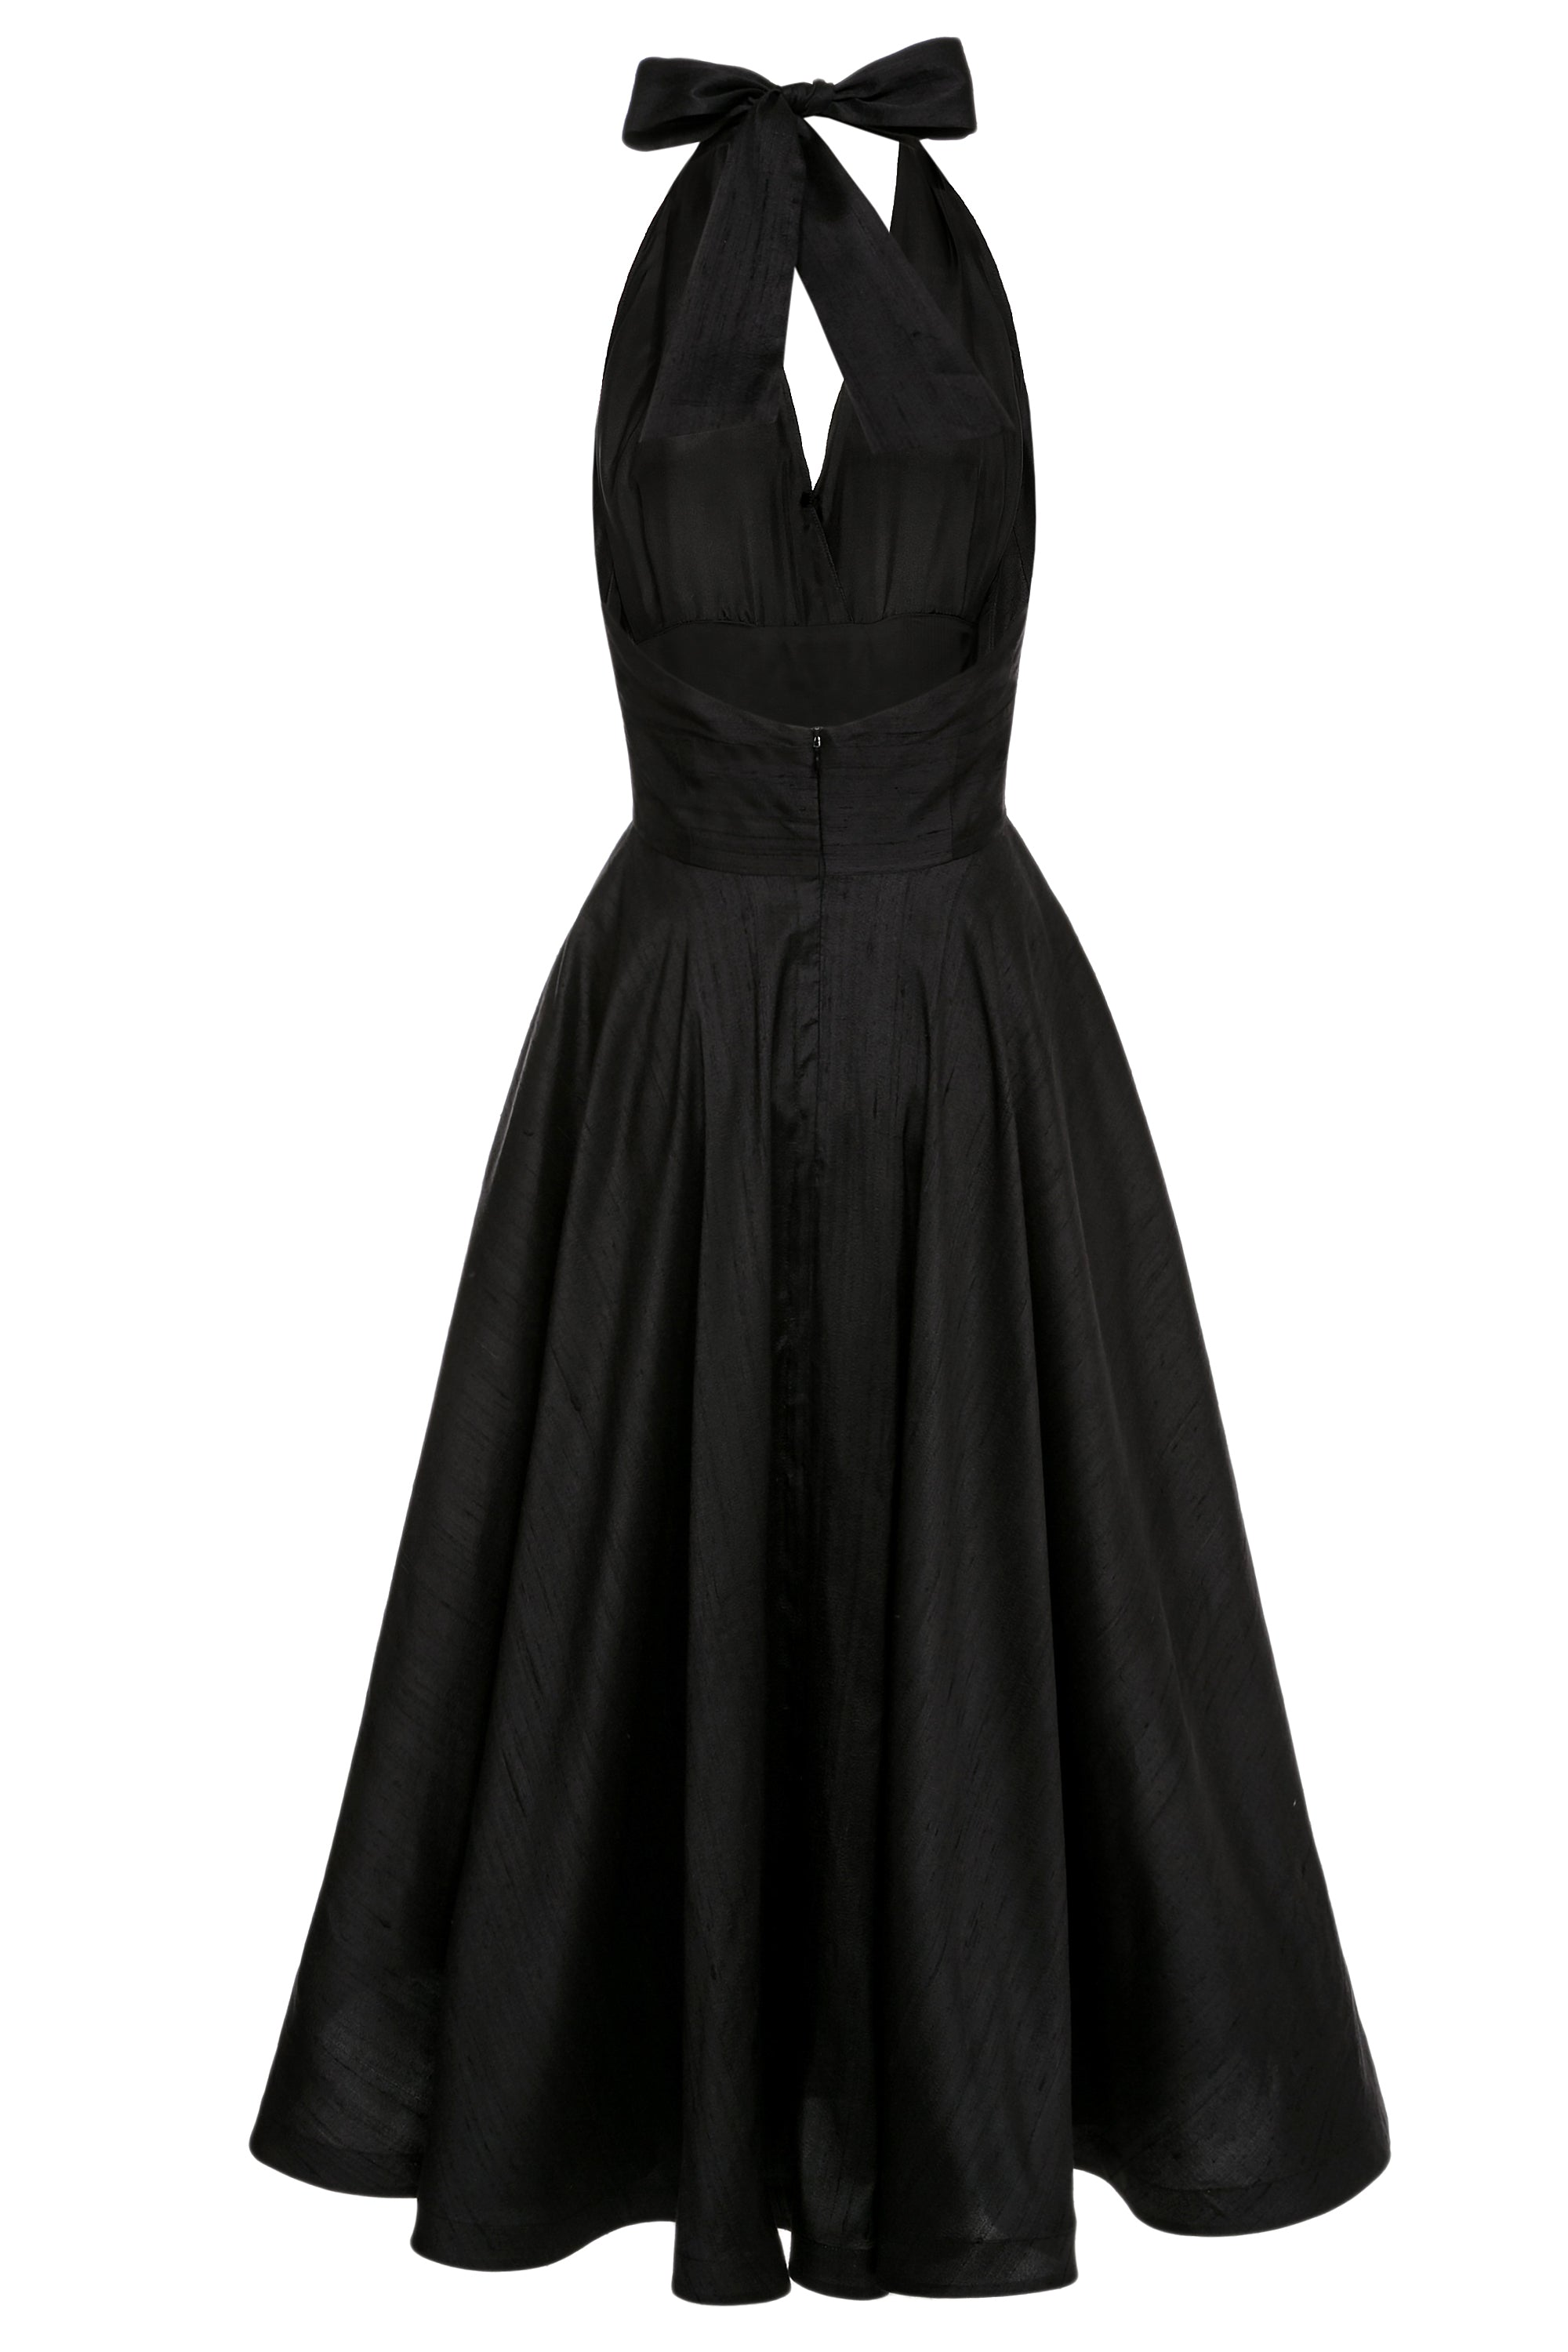 The Cannes Dress Black